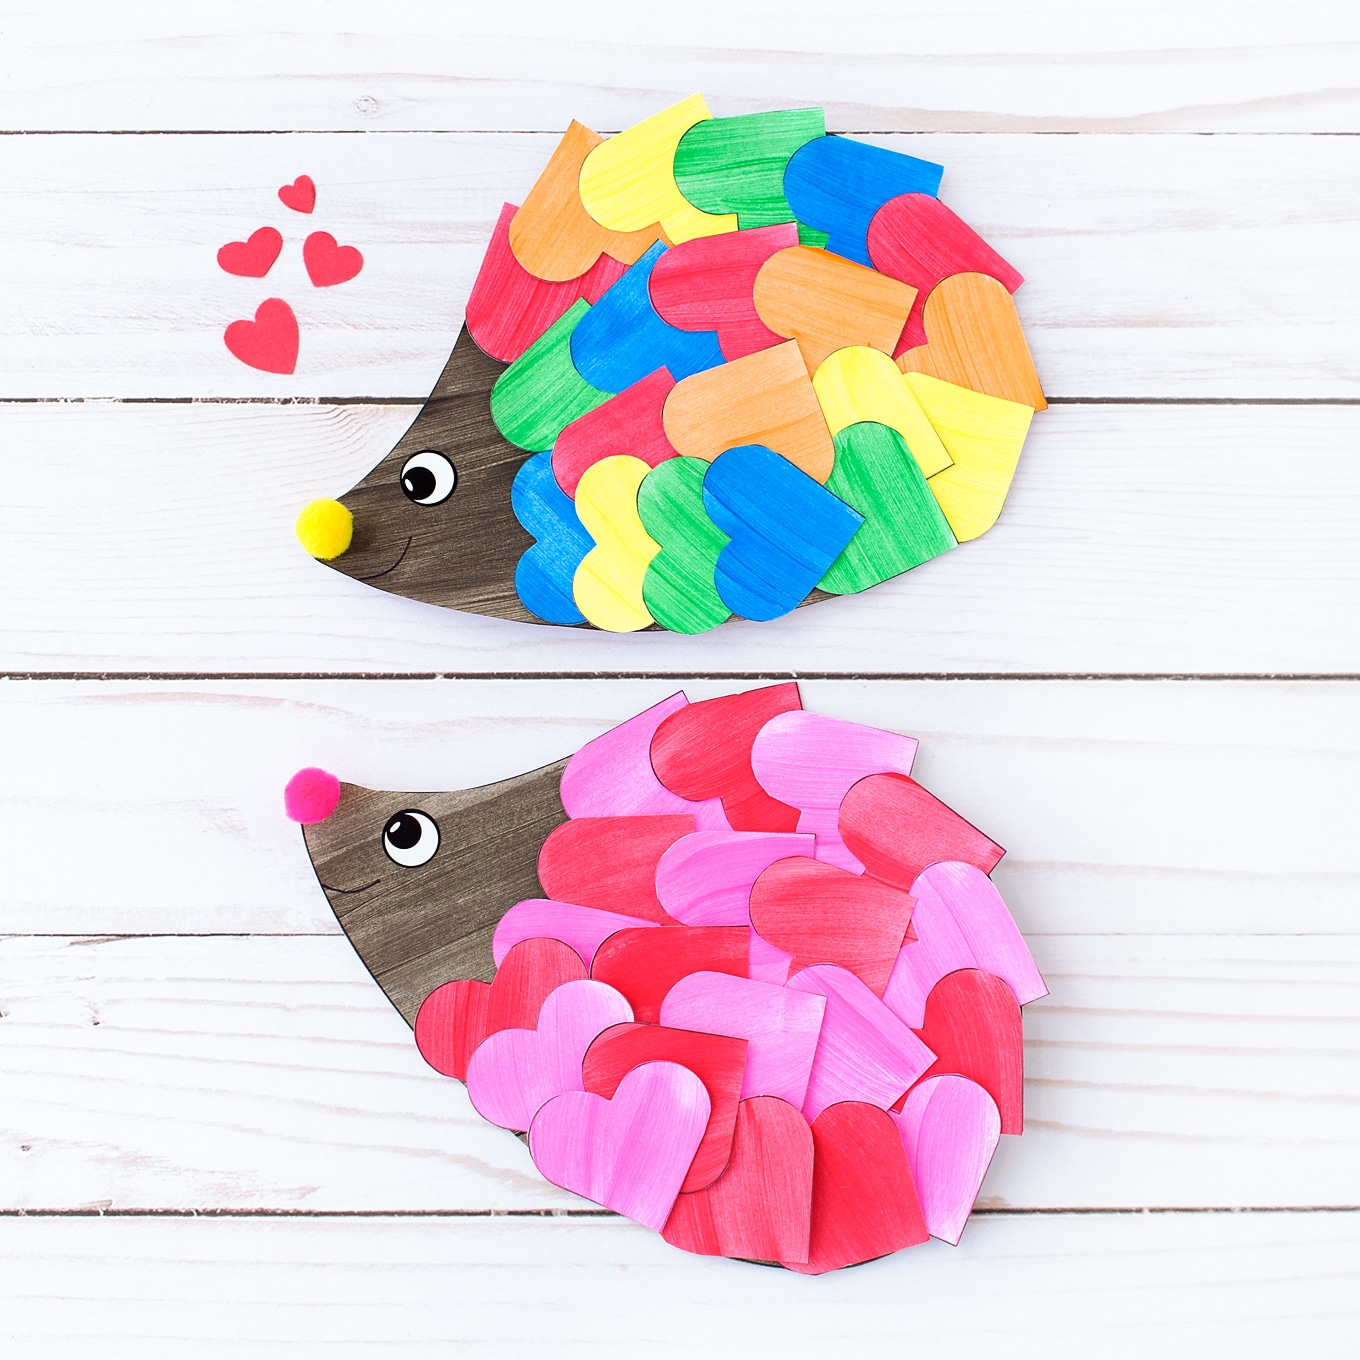 Simple and Cute Construction Paper Crafts for Kids How To Make The Sweetest Valentine Hedgehog Craft For Kids